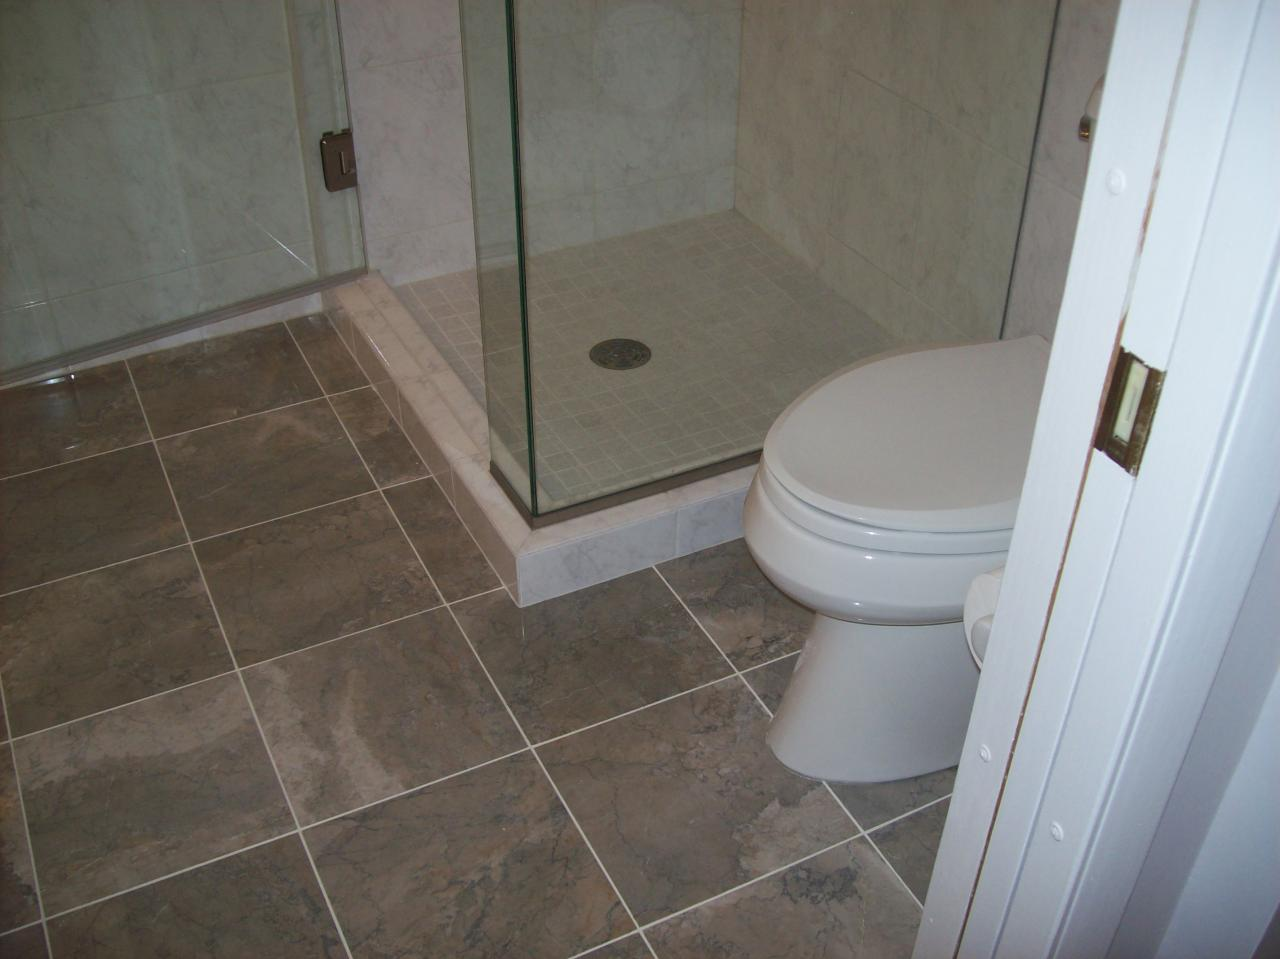 floor tiles bathroom - Tile Designs For Bathroom Floors